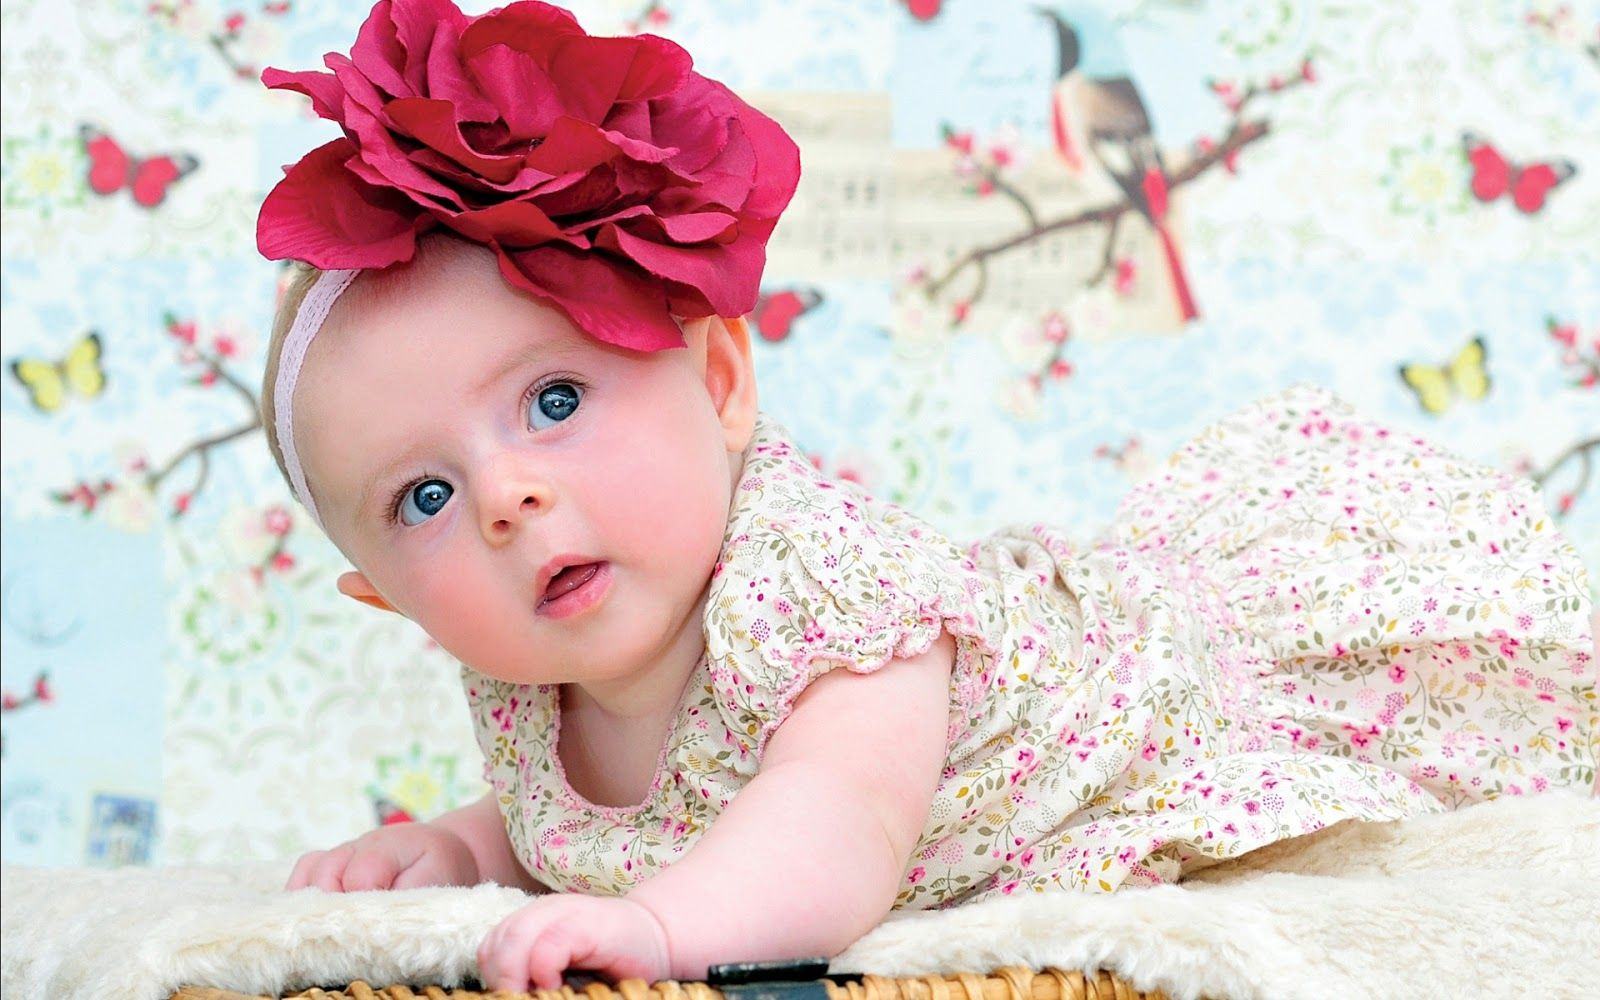 Cute Baby Picture Hd Wallpaper Free Download 3d Android Baby